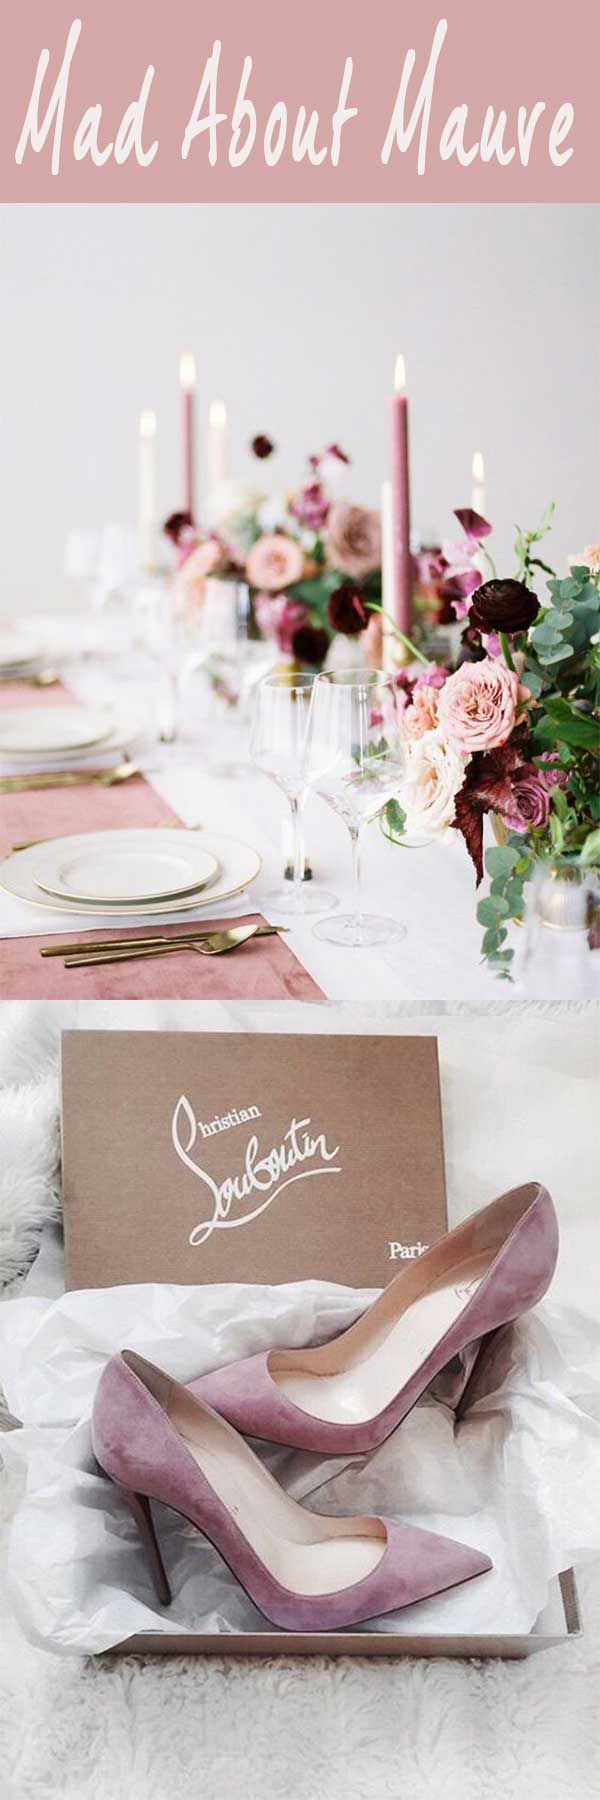 Wedding decorations rustic october 2018  STYLISH u PRETTIEST WEDDING COLOR TREND  SHADE OF MAUVE